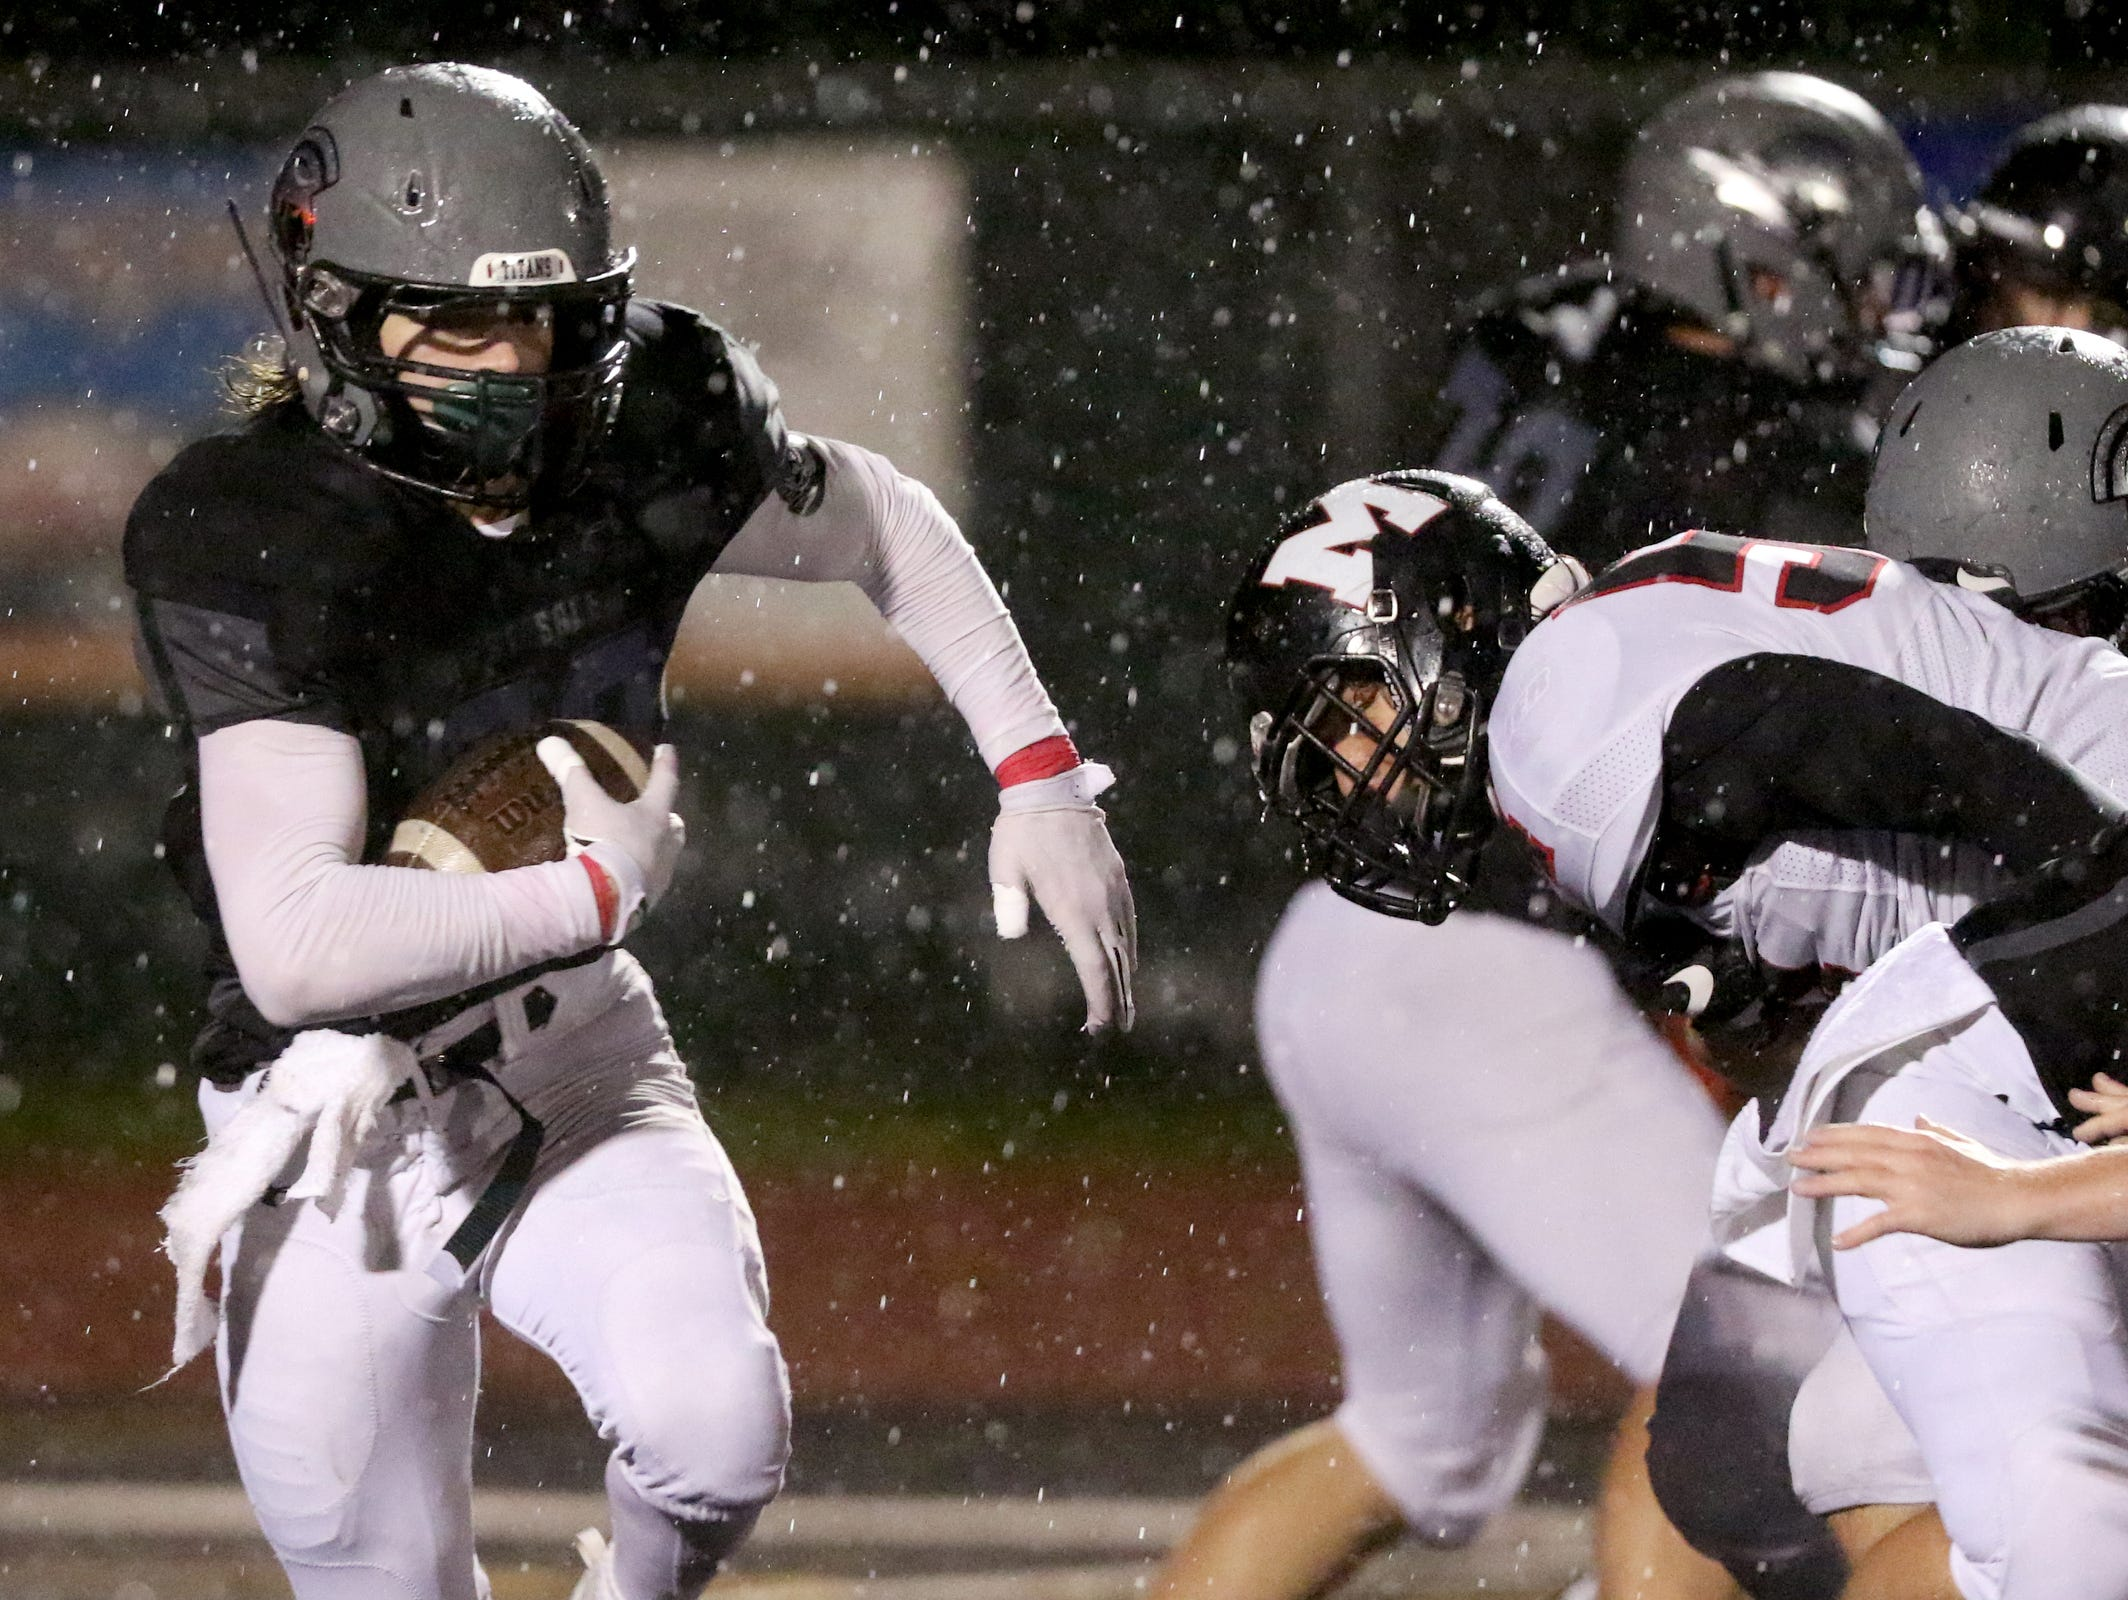 West Salem's Noah Whitaker (20) runs with the ball in the second half of the McMinnville vs. West Salem football game at West Salem High School on Thursday, Oct. 13, 2016. West Salem won the game 16-8.